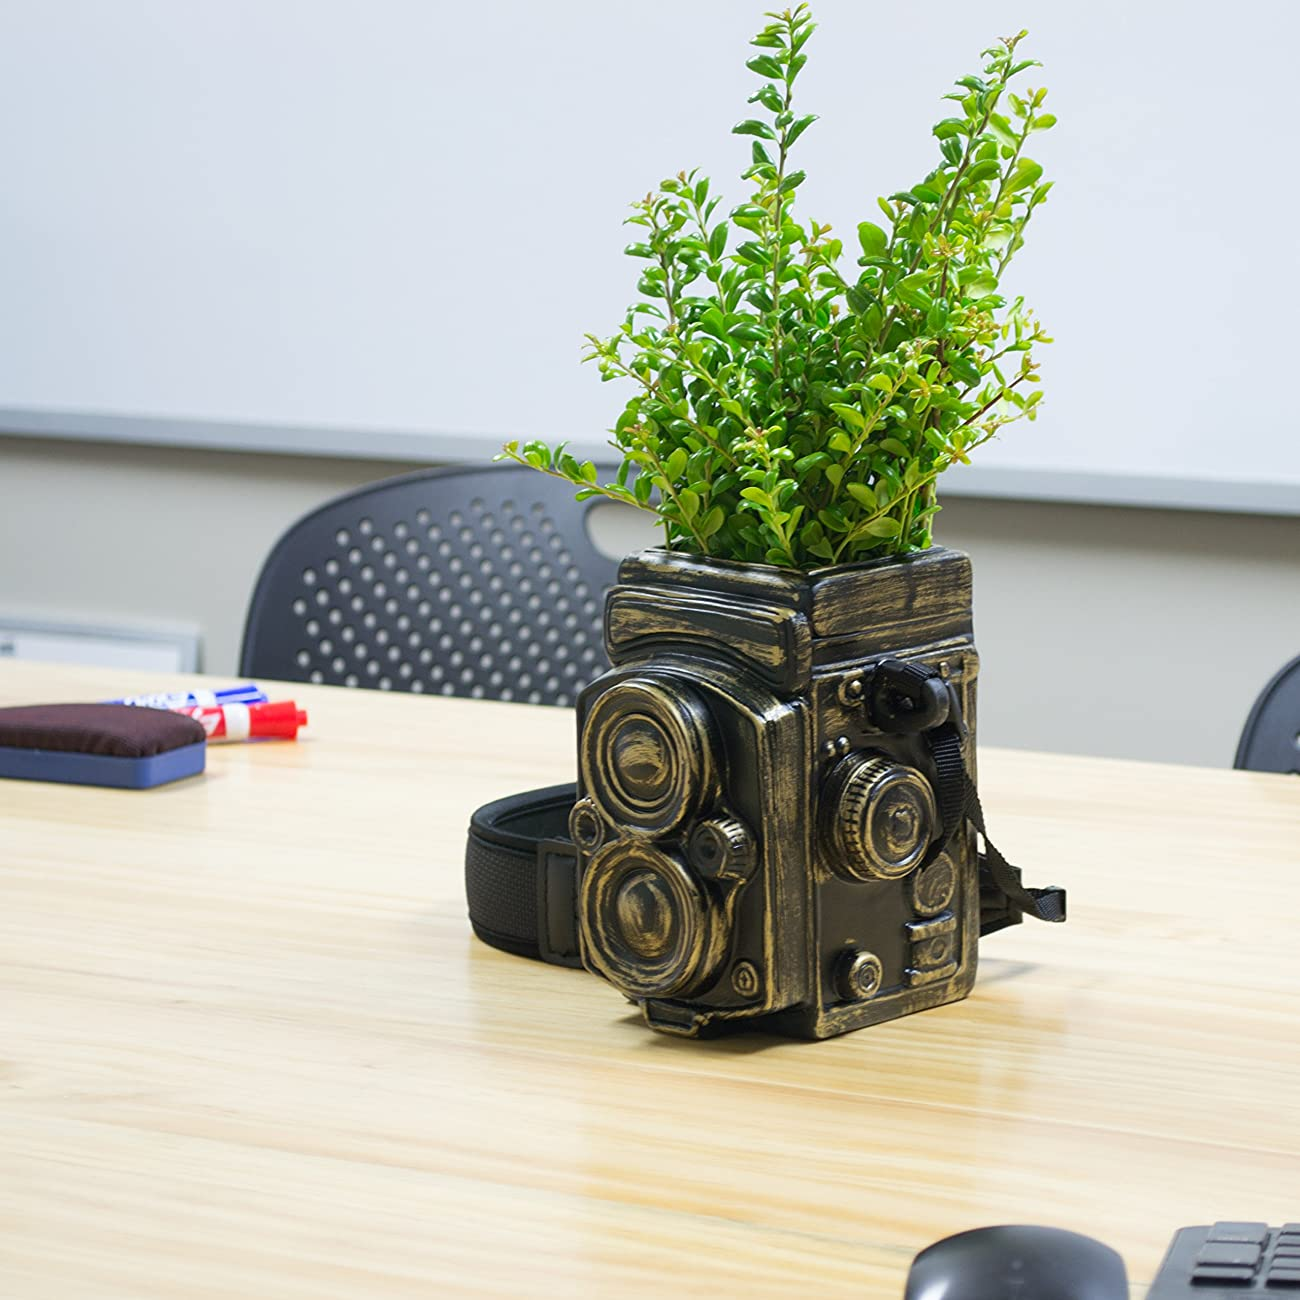 Vintage Camera Style Ceramic Decorative Vase / Planter w/ Strap, Brushed Bronze-Tone, by MyGift Home 3